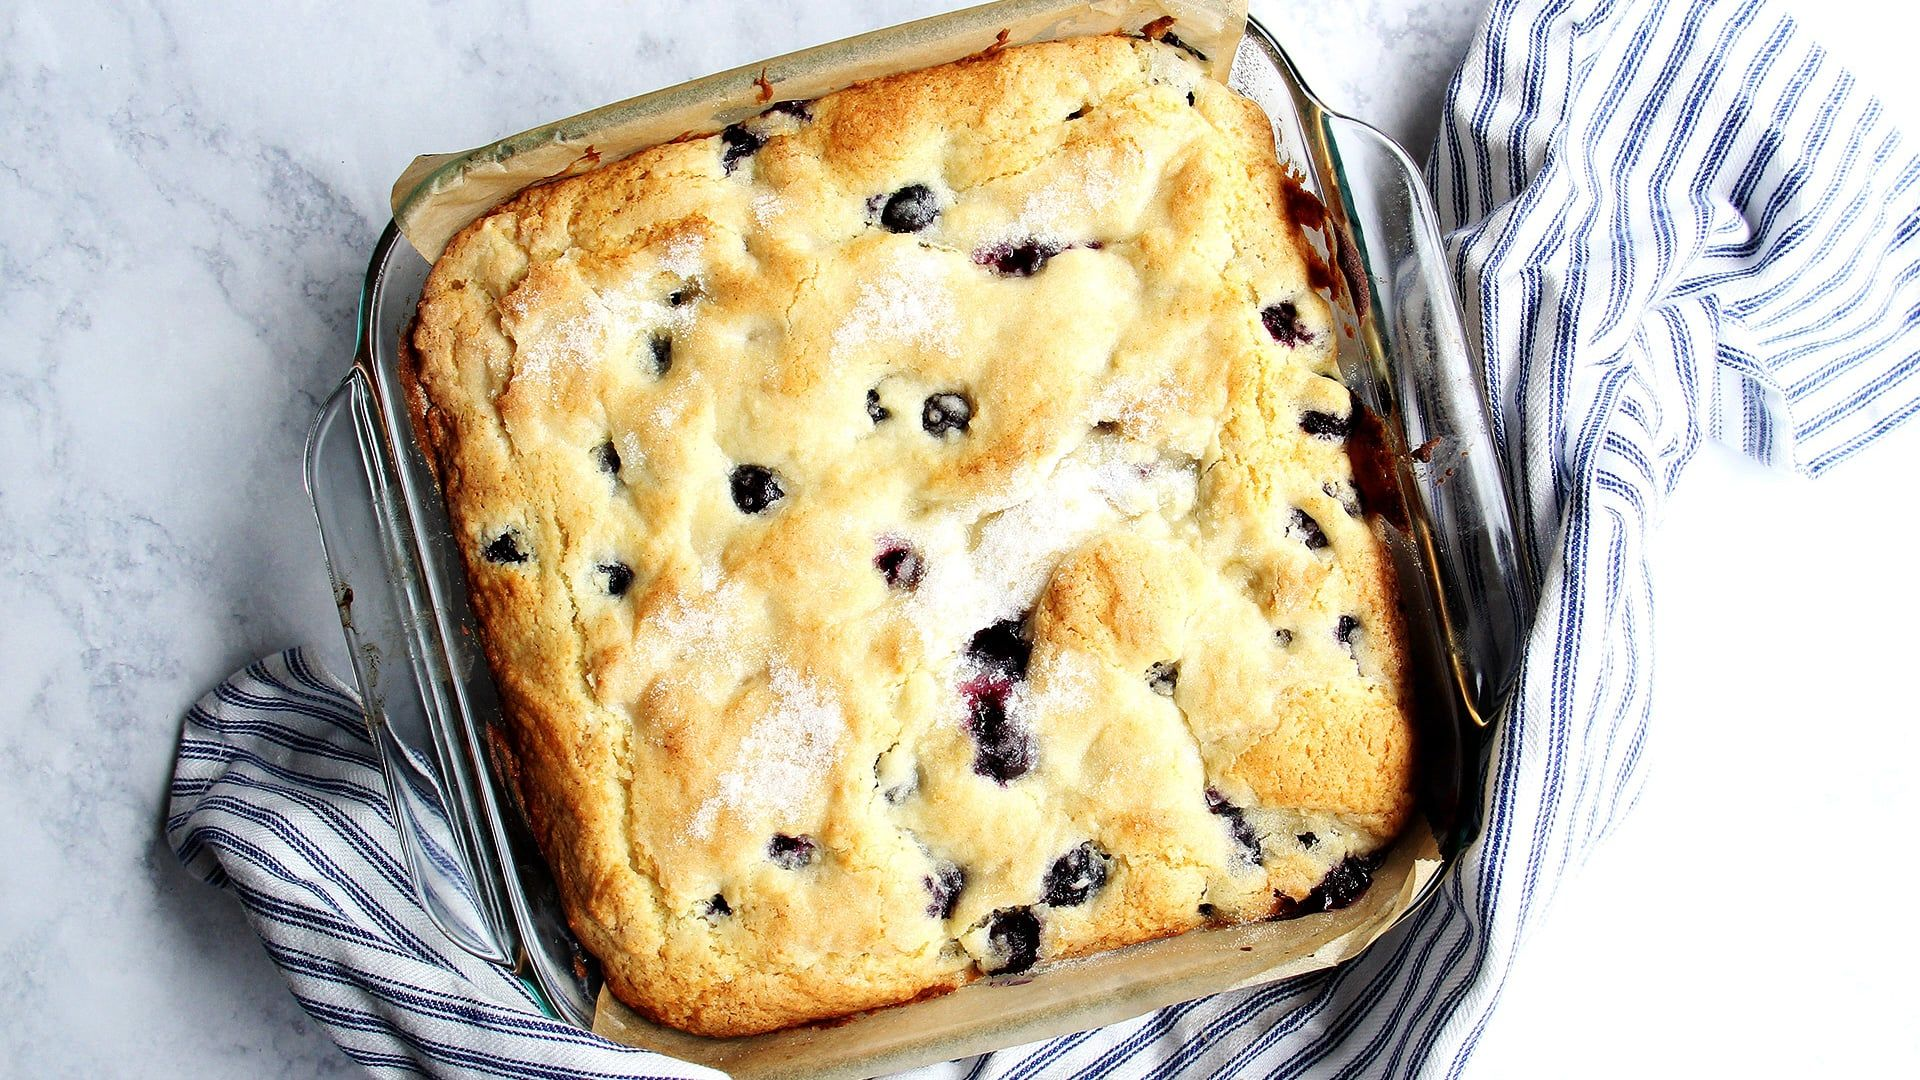 Buttermilk Blueberry Breakfast Cake Breakfast Cake Blueberry Breakfast Cake Blueberry Breakfast